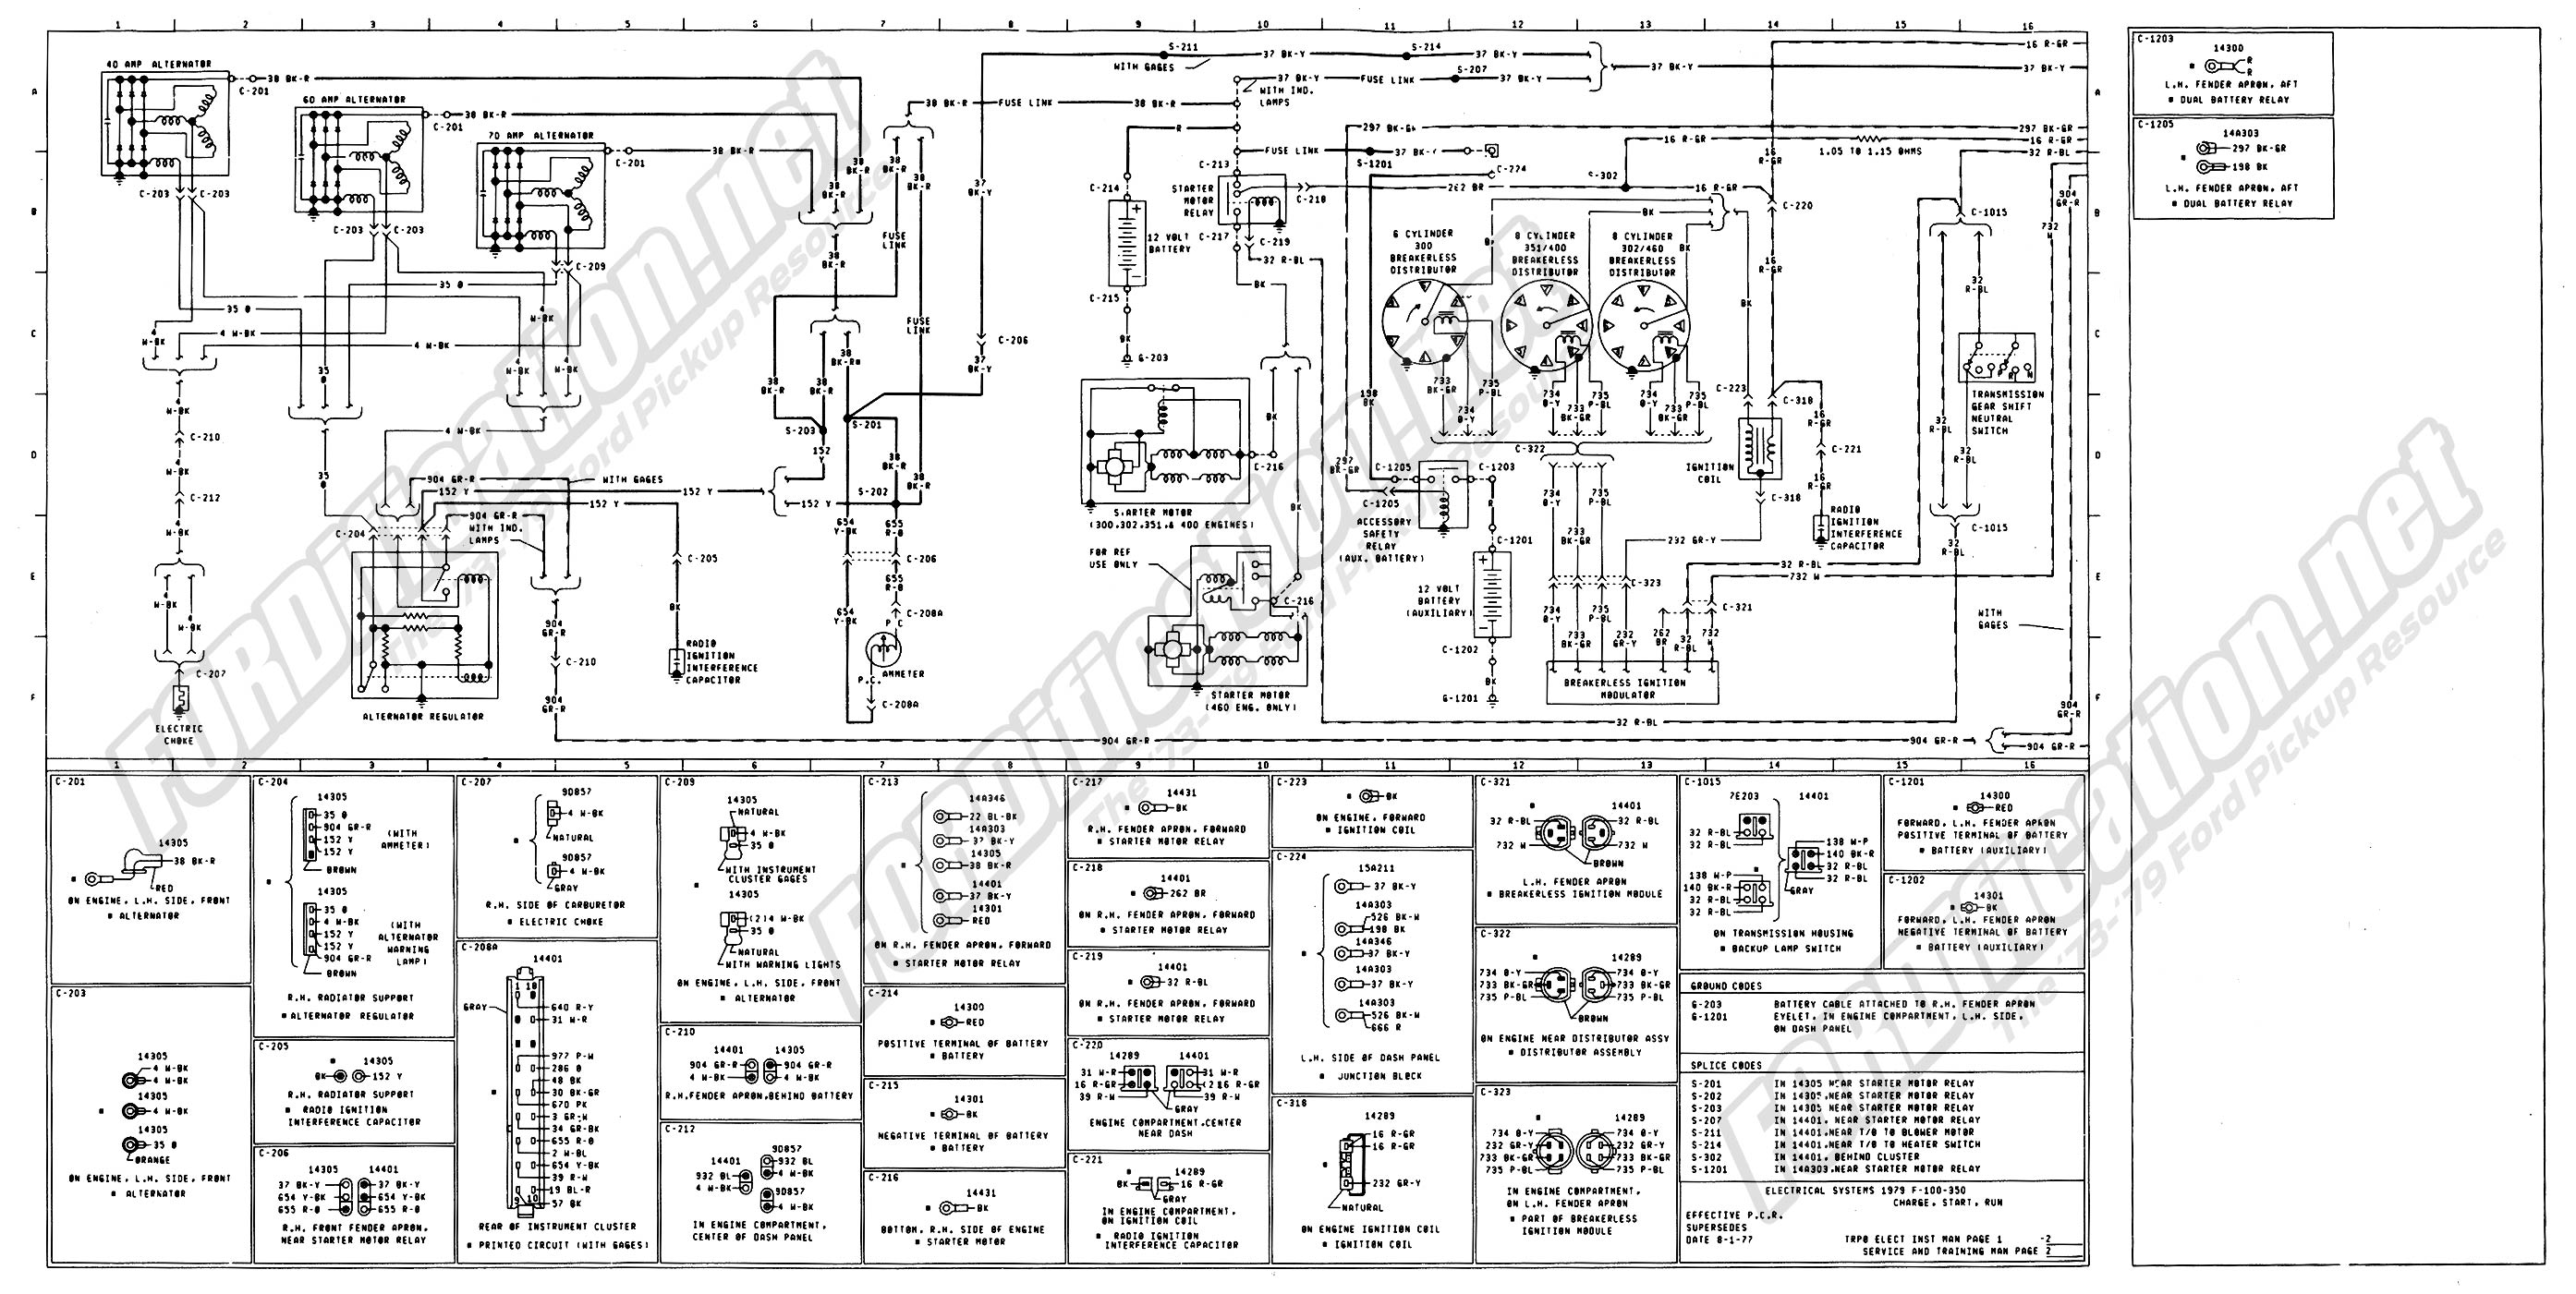 wiring_79master_2of9 1973 1979 ford truck wiring diagrams & schematics fordification net ford wiring harness diagrams at gsmx.co